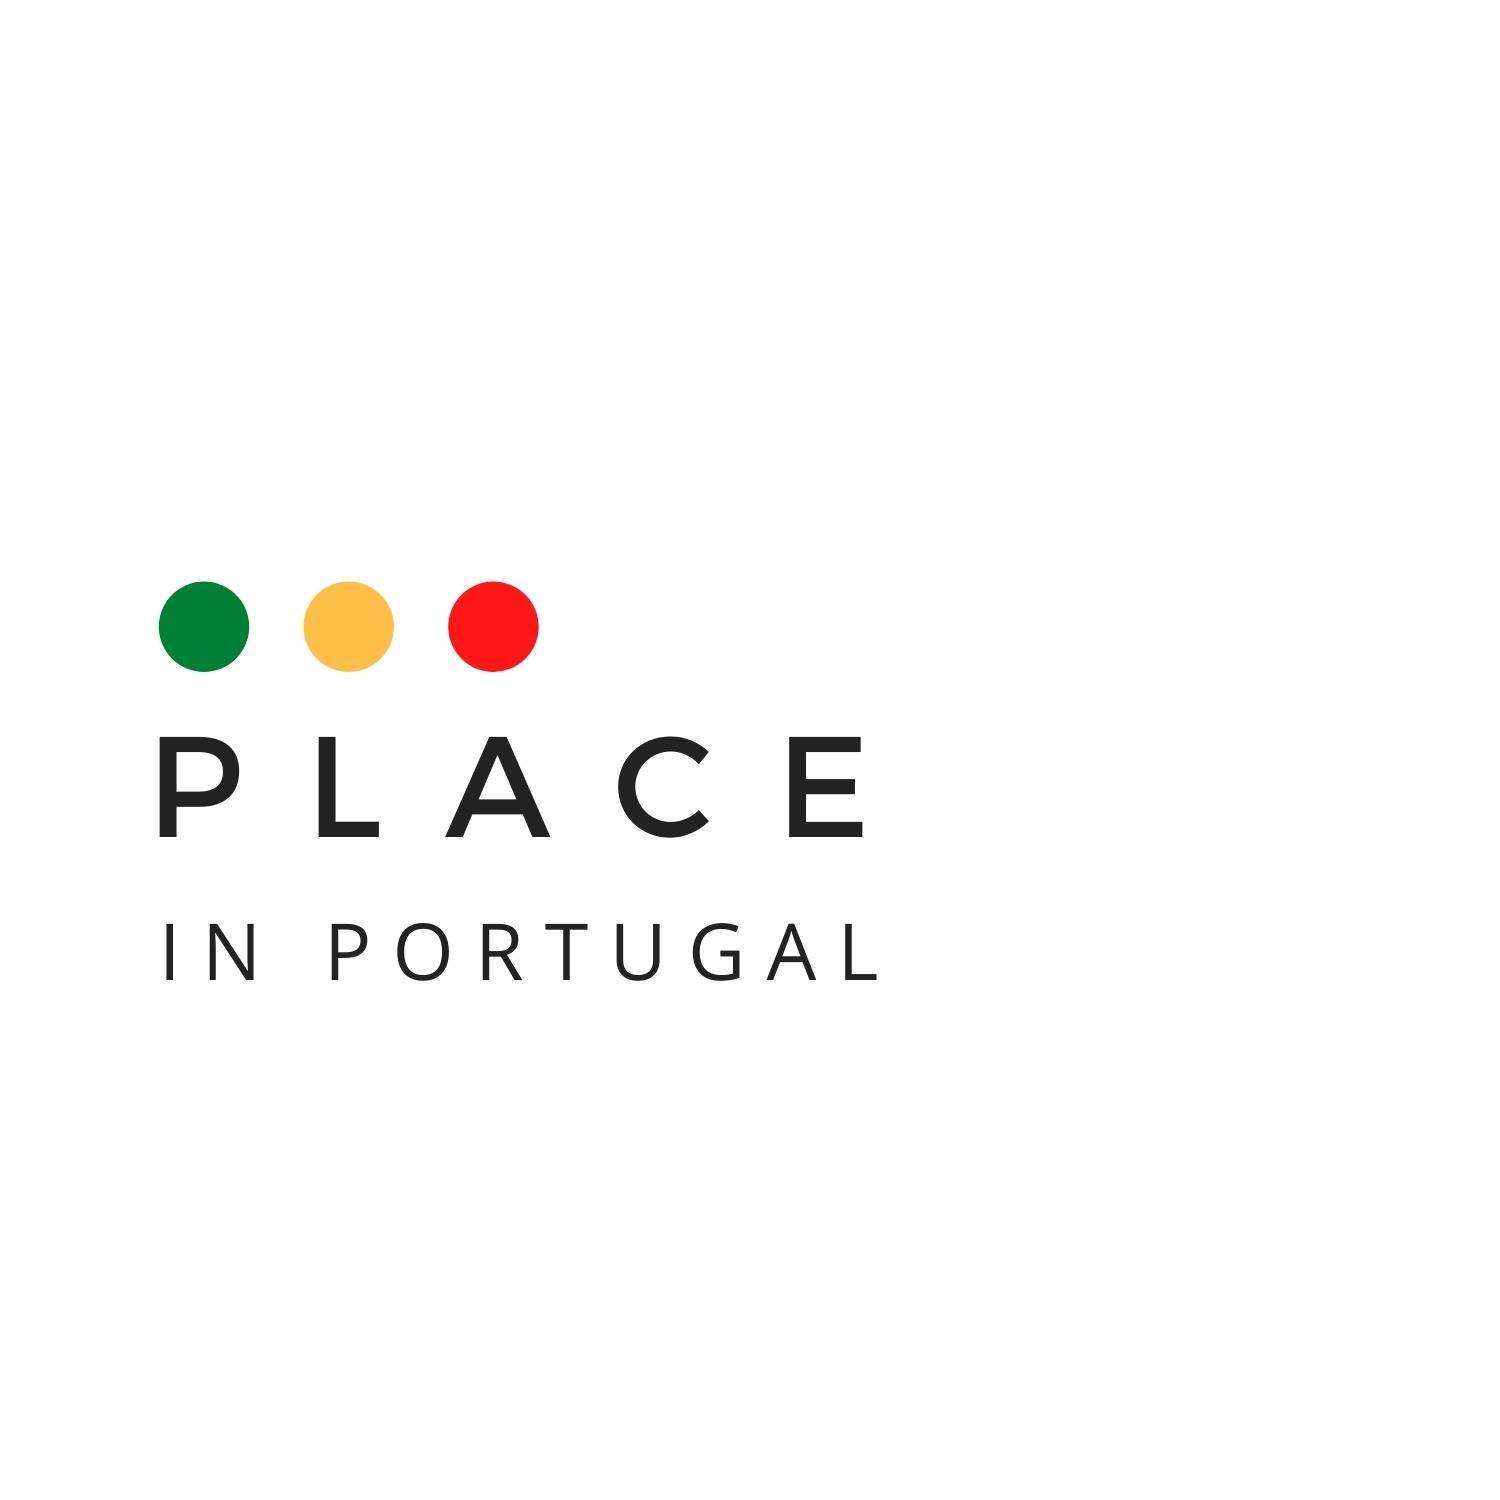 Place in Portugal